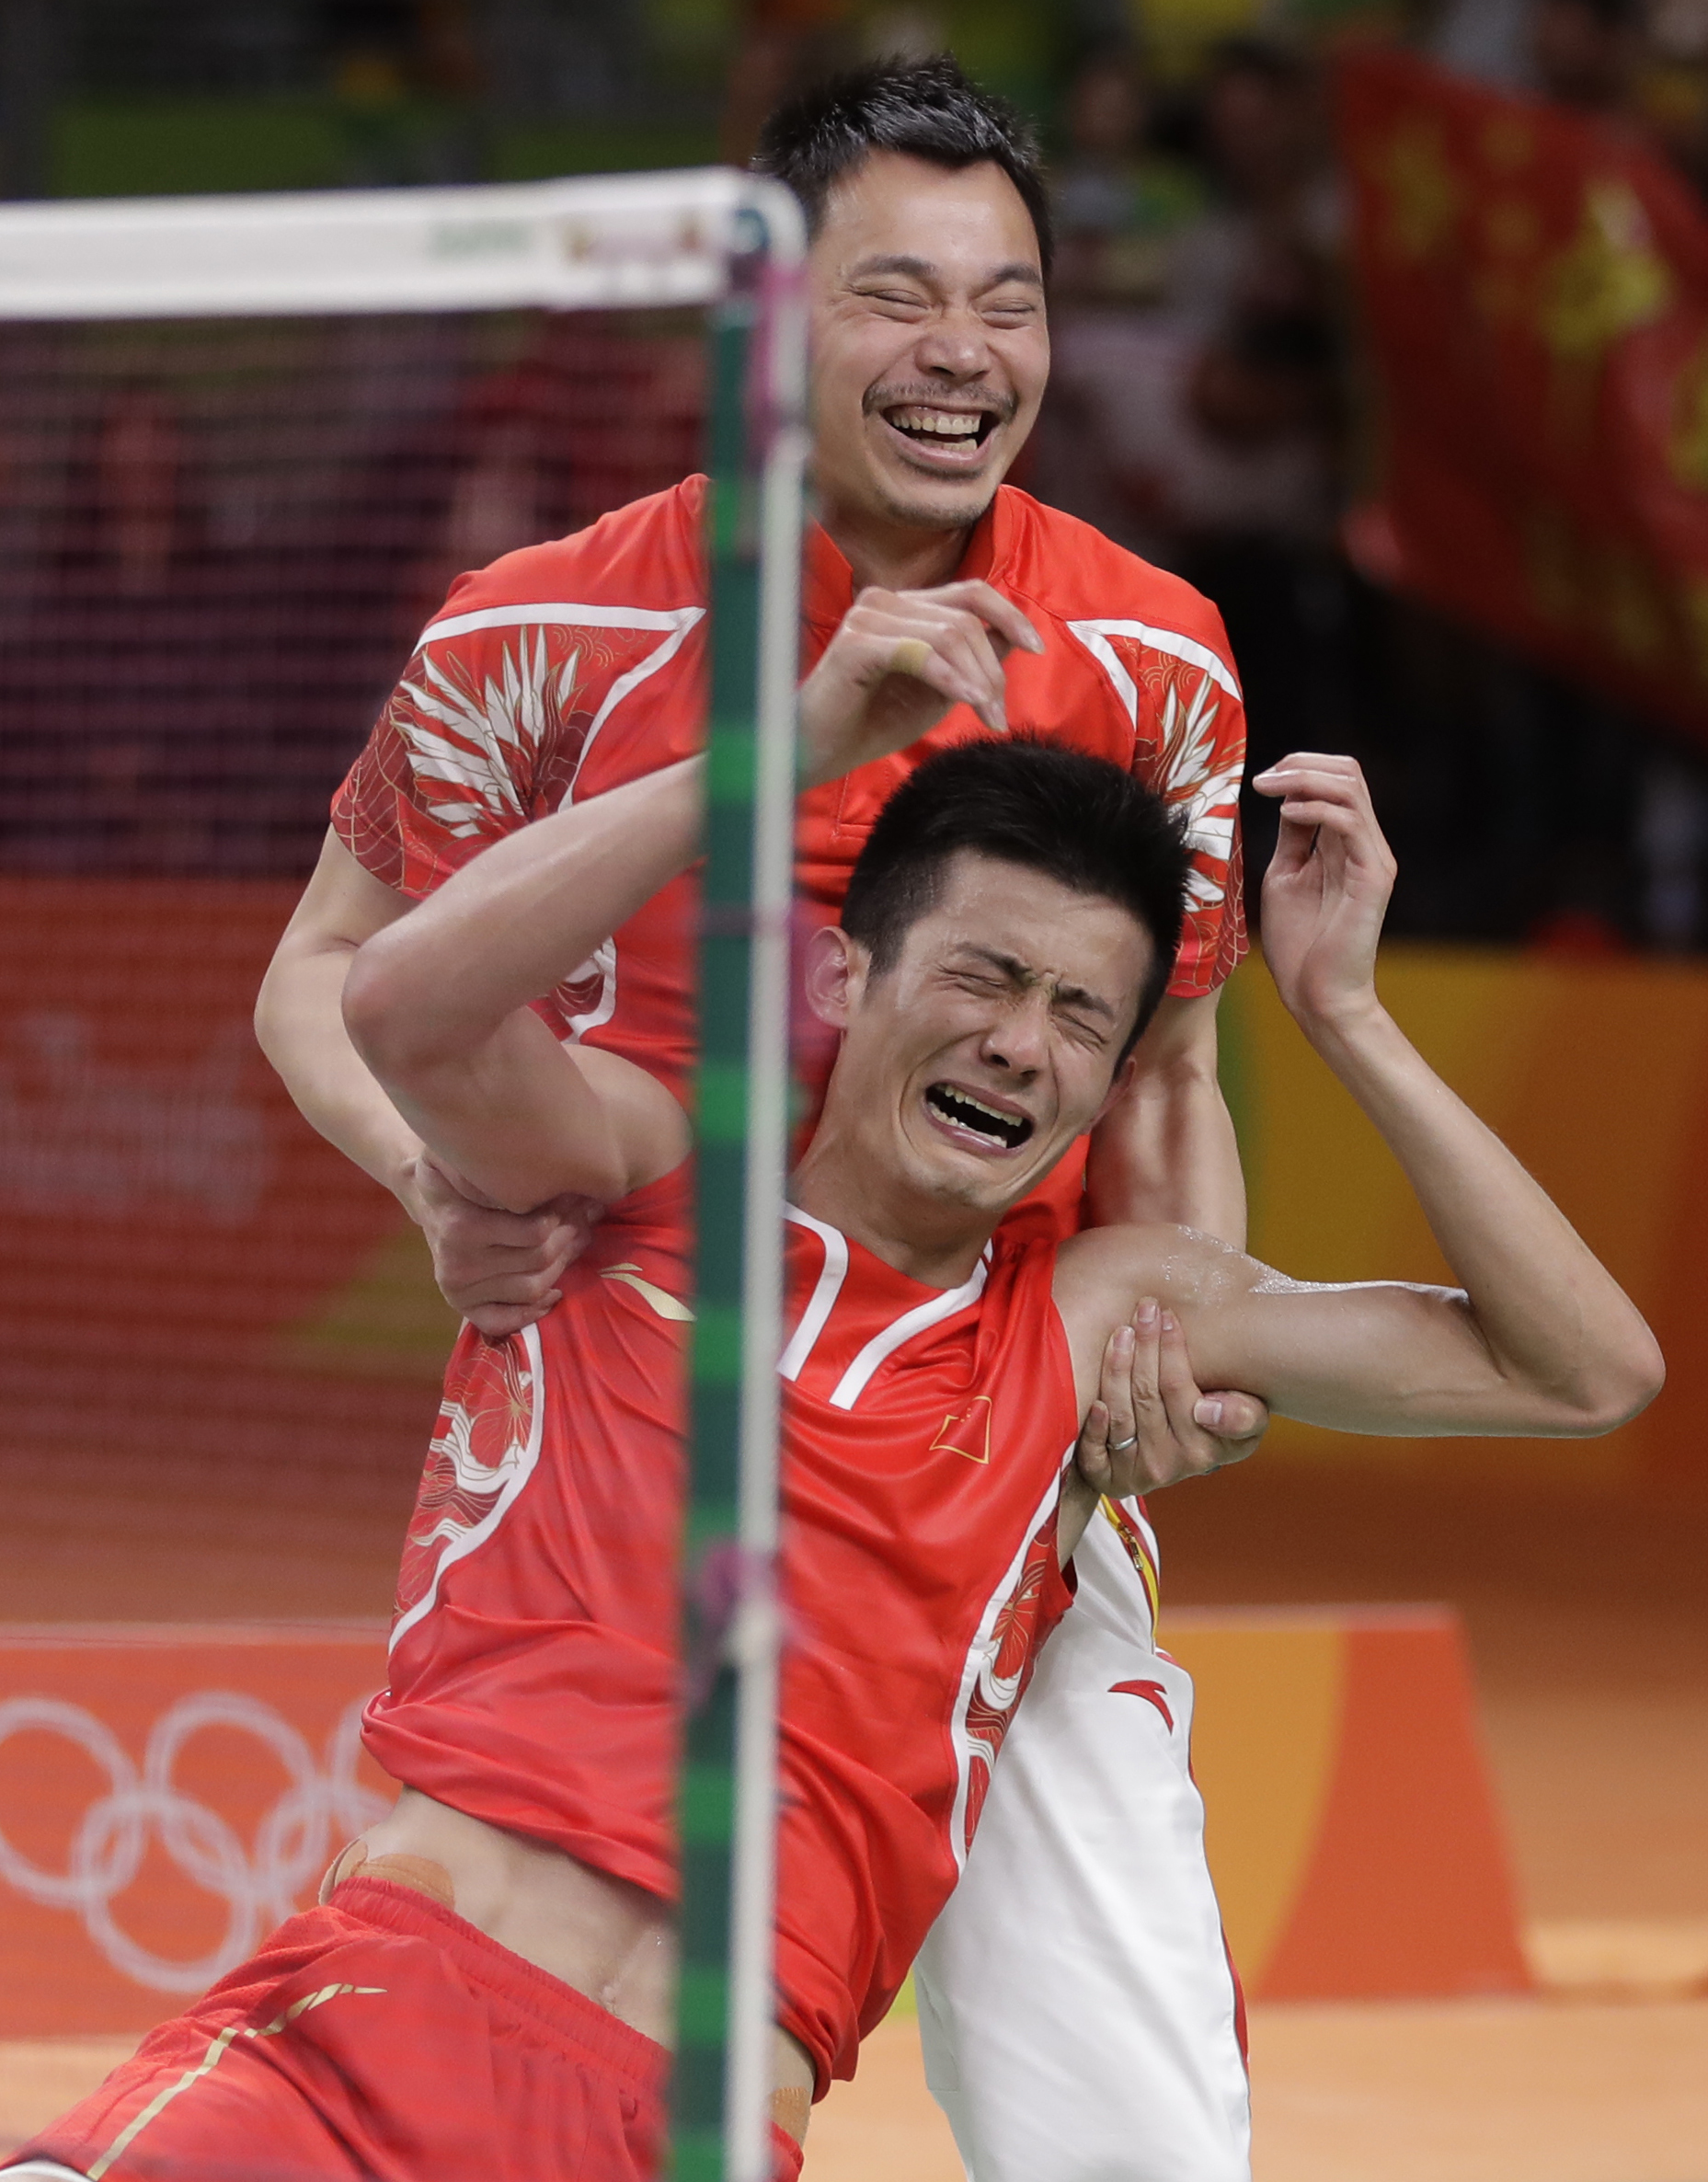 China's Chen Long celebrates after winning his men's badminton singles final match against Malaysia's Lee Chong Wei, at the 2016 Summer Olympics in Rio de Janeiro, Brazil, Saturday, Aug. 20, 2016. (AP Photo/Kin Cheung)